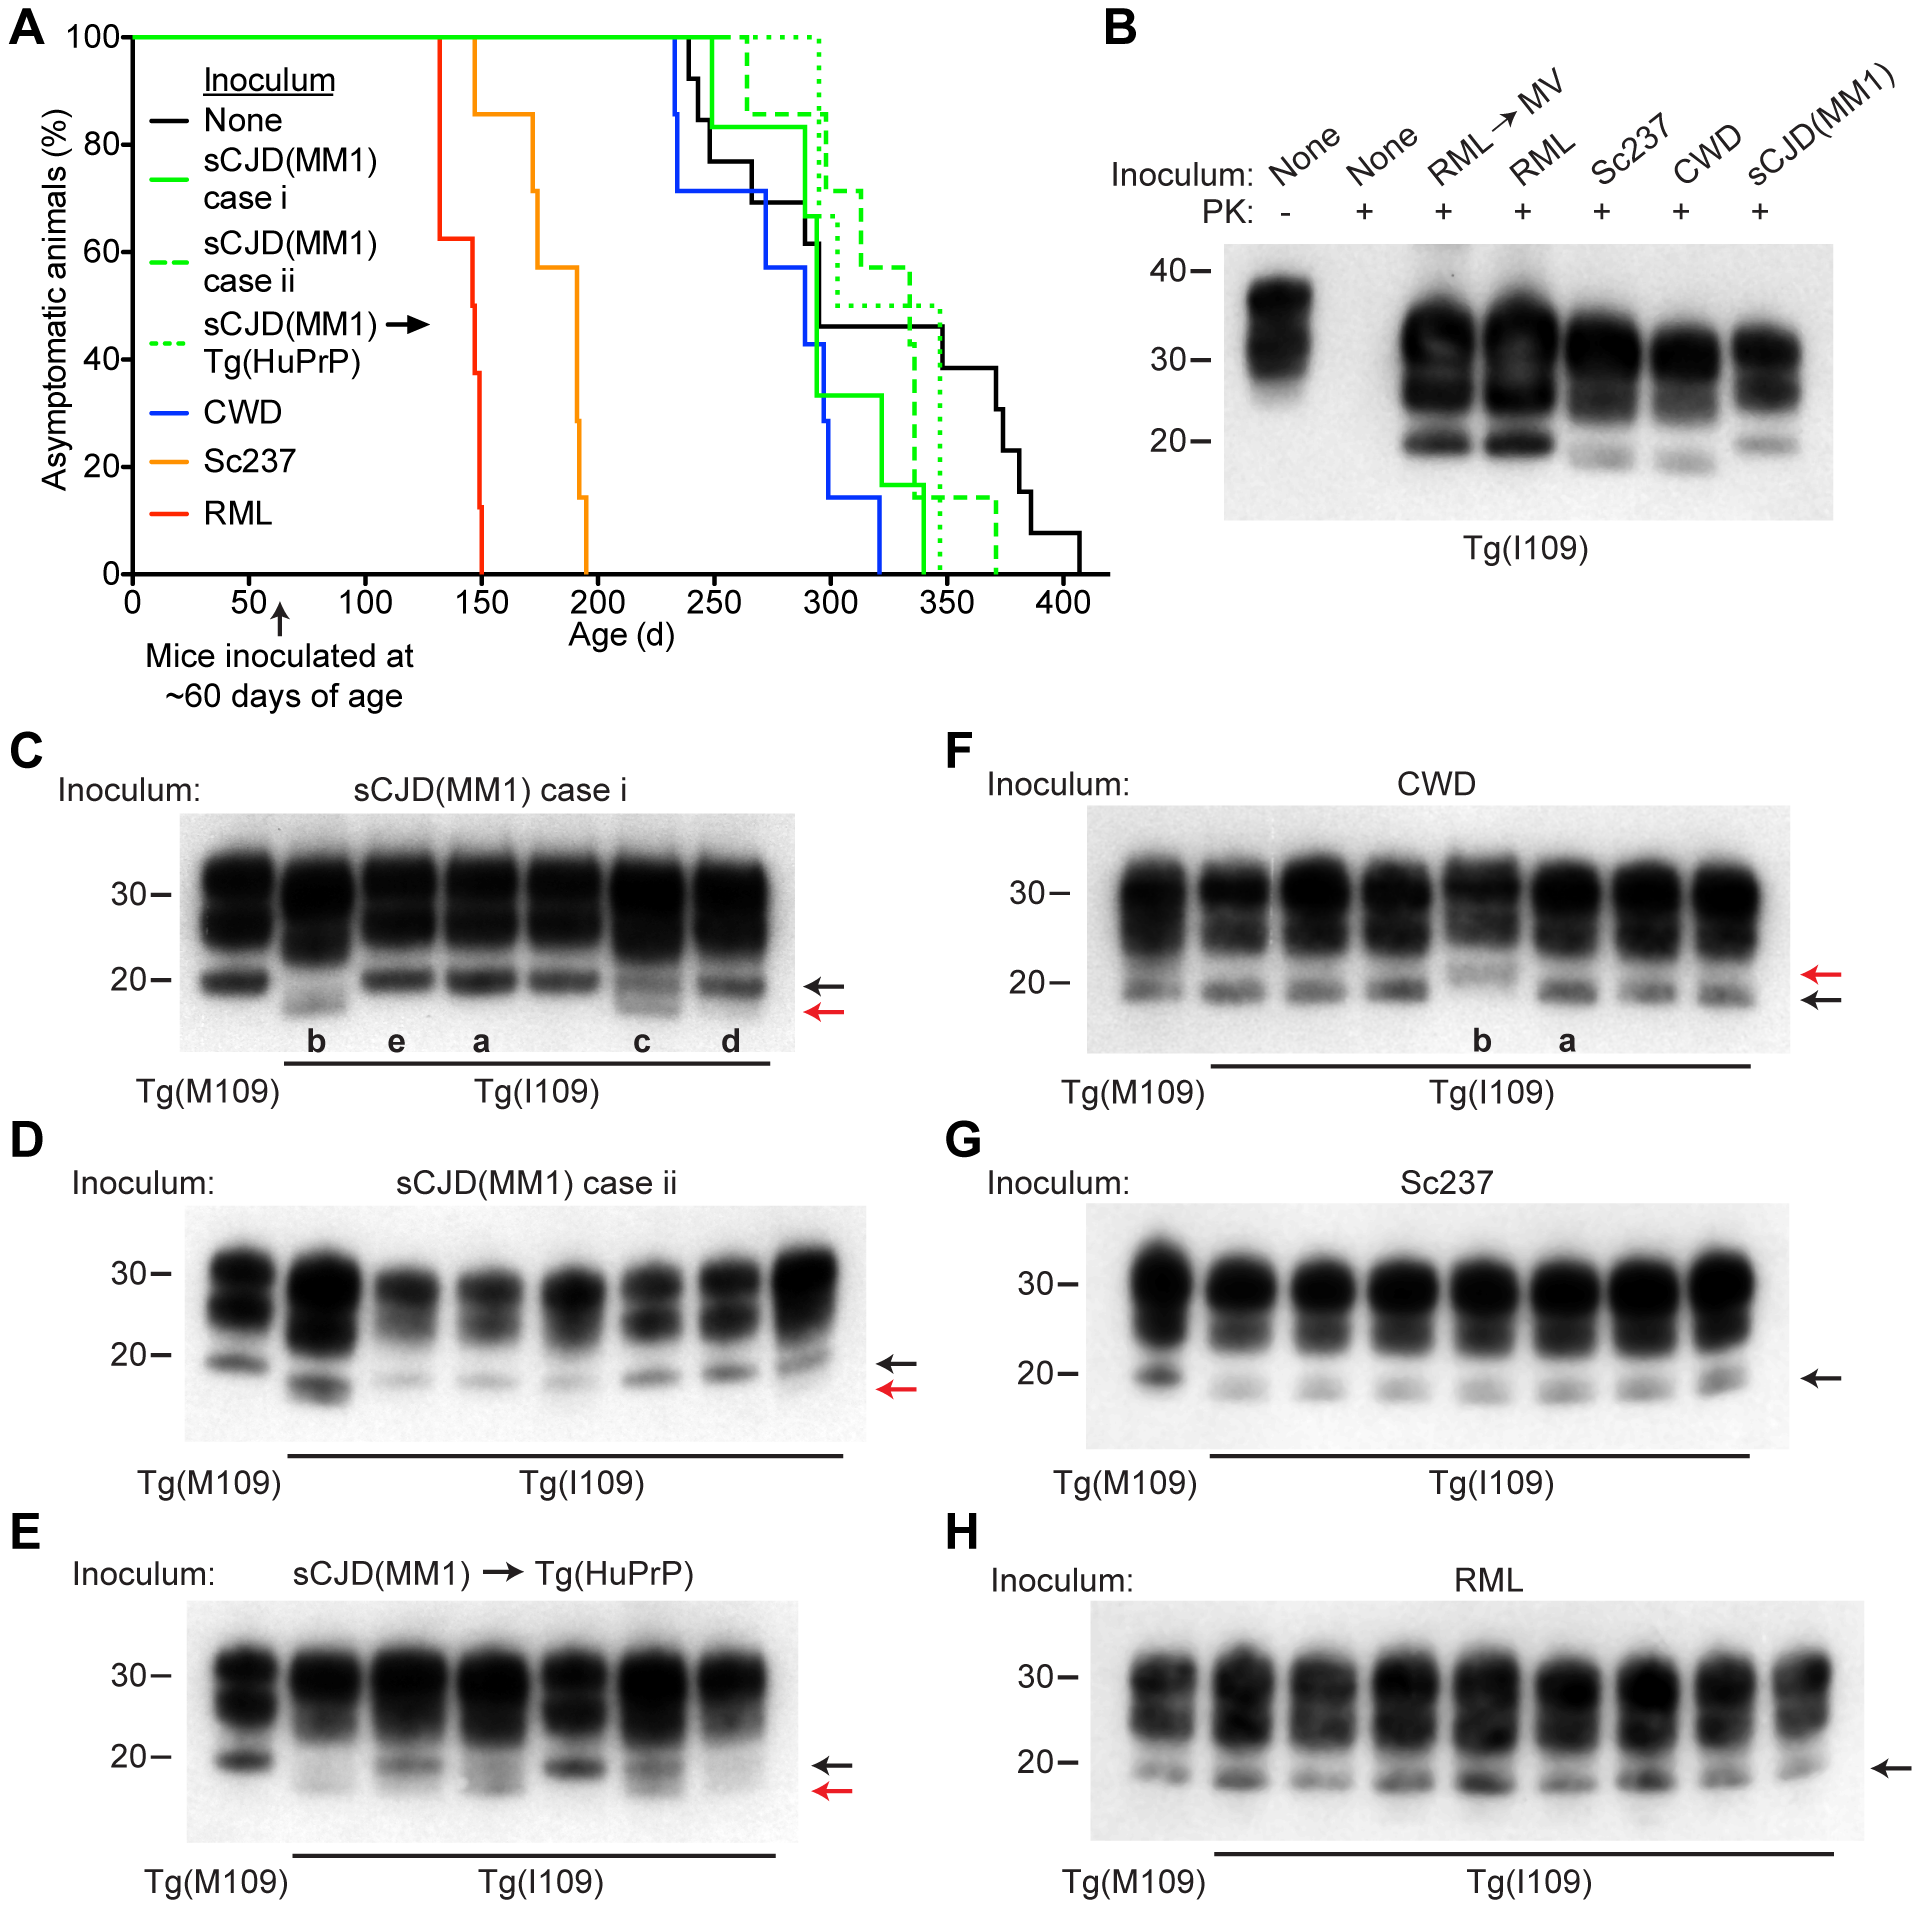 Prion strain diversity following passage of sCJD(MM1) and CWD prions in Tg(I109) mice.